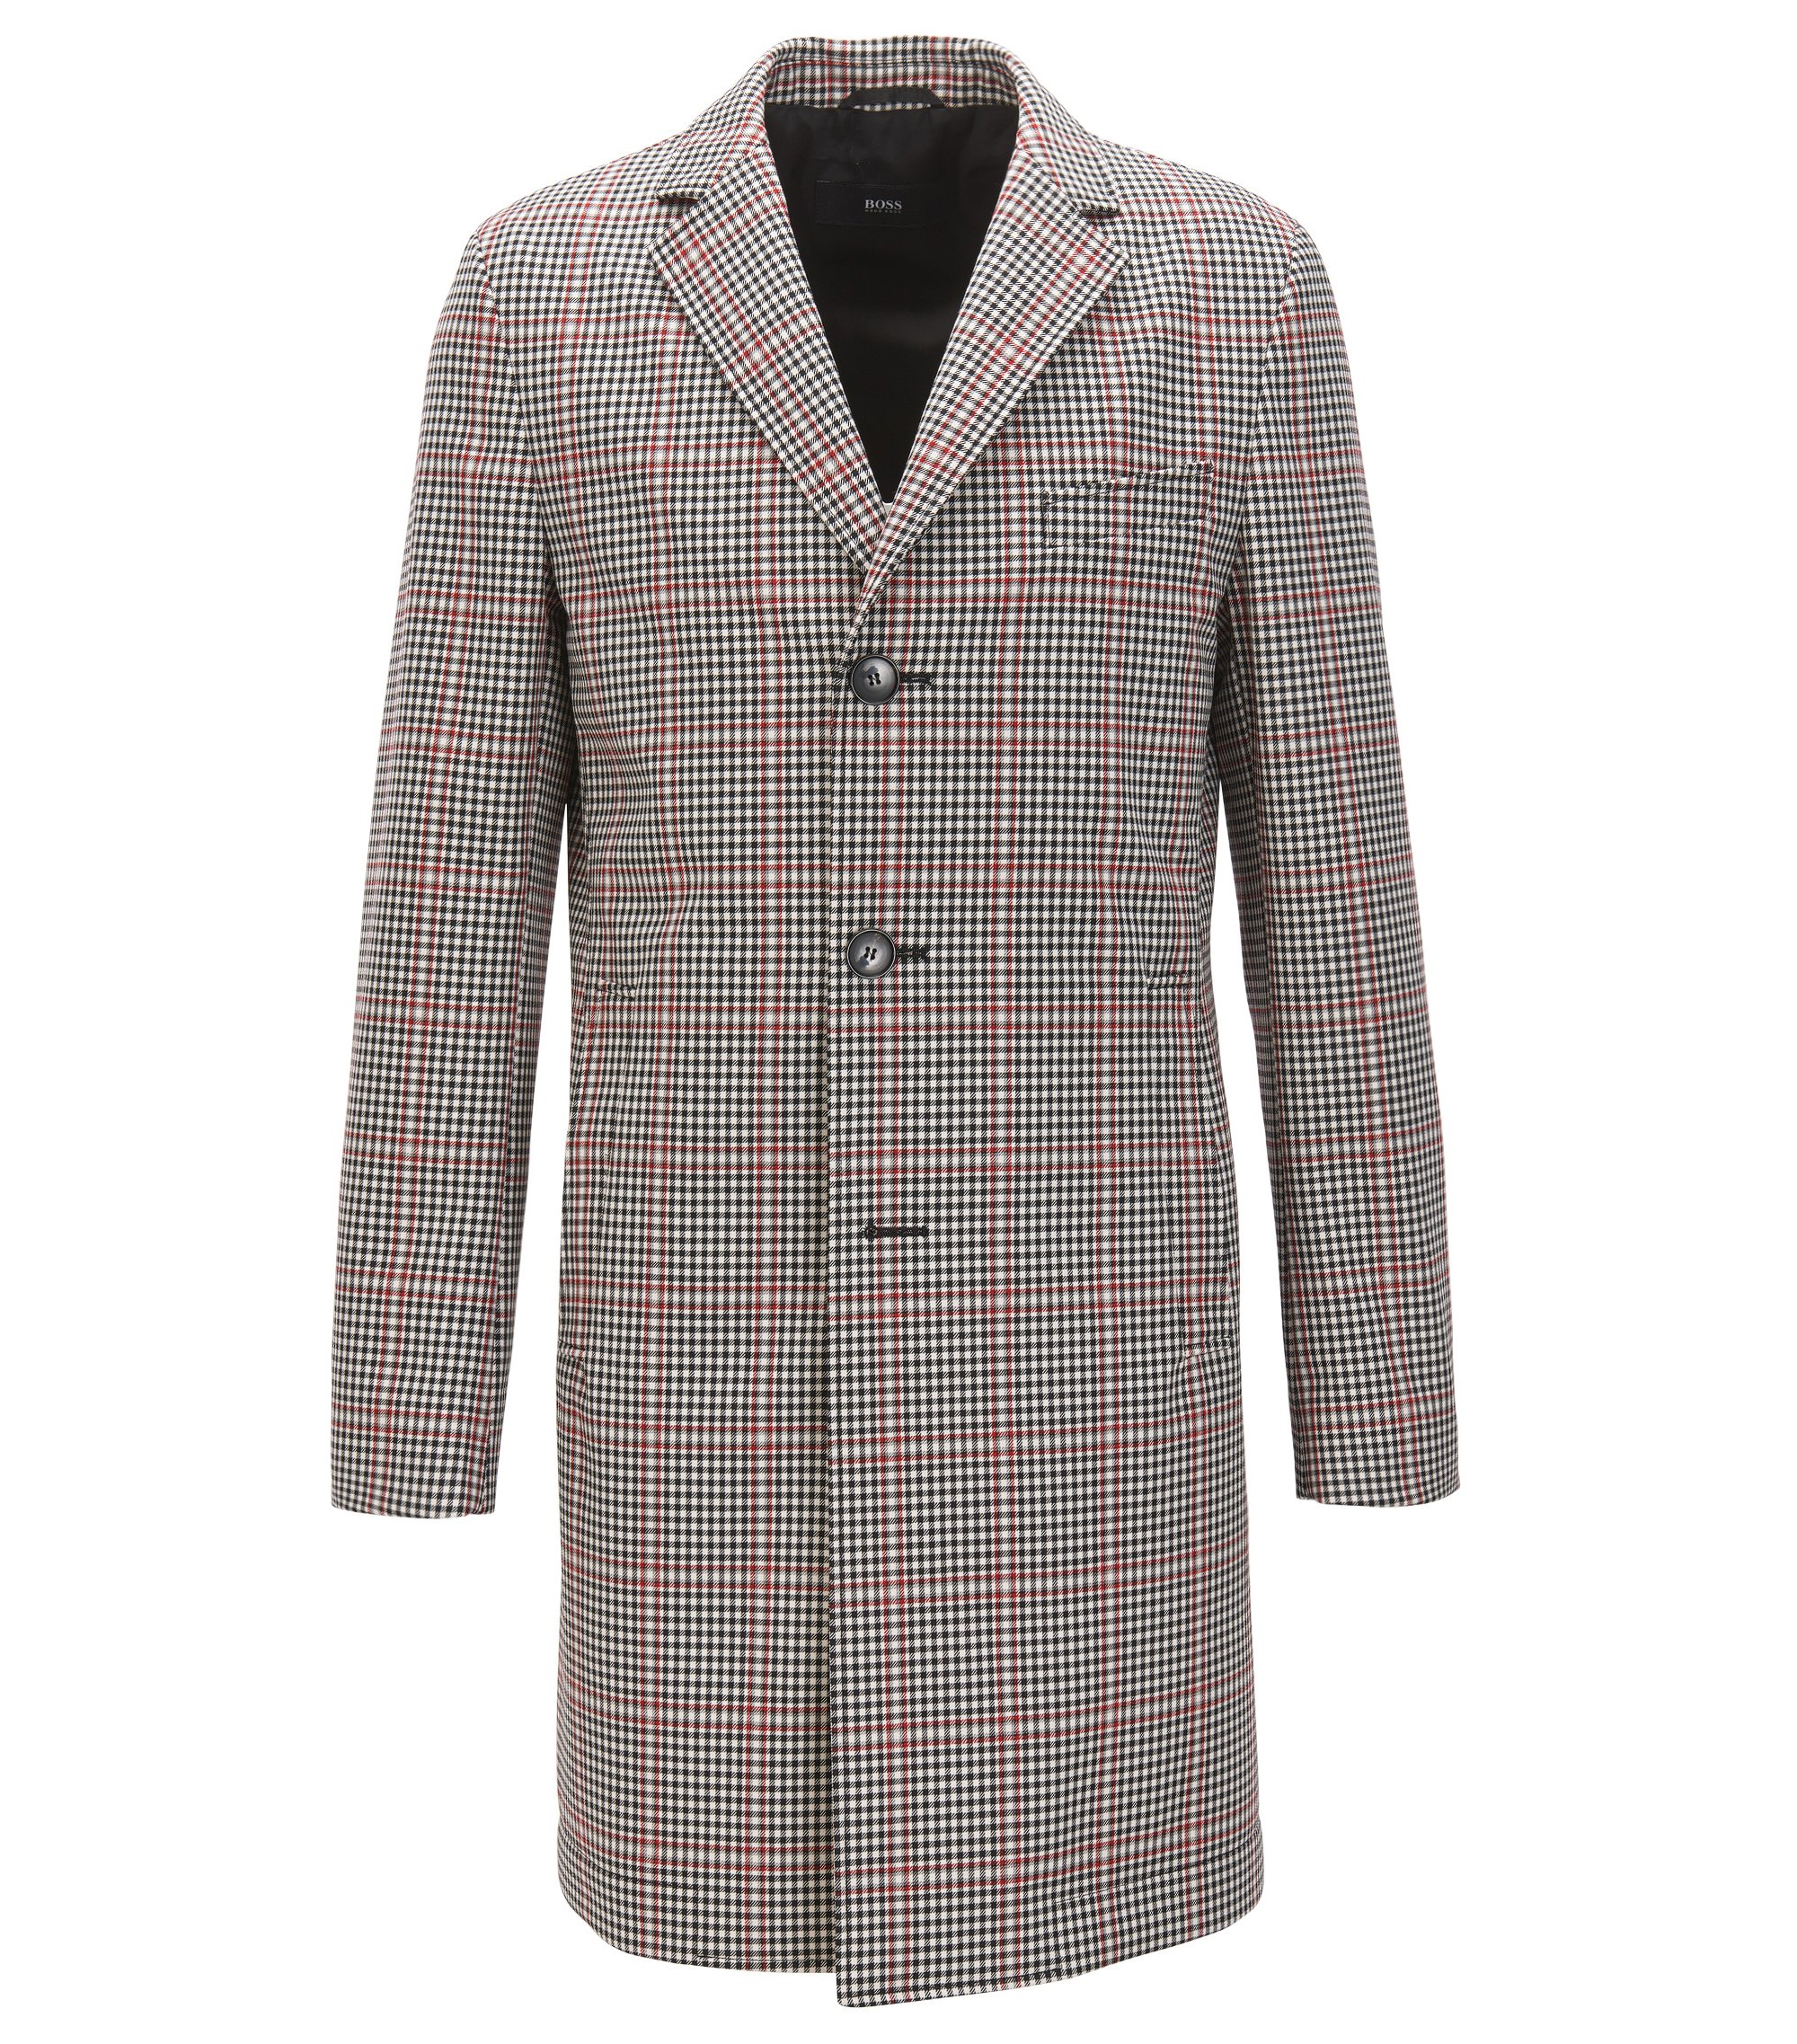 Slim-fit coat in a coated wool blend, Patterned